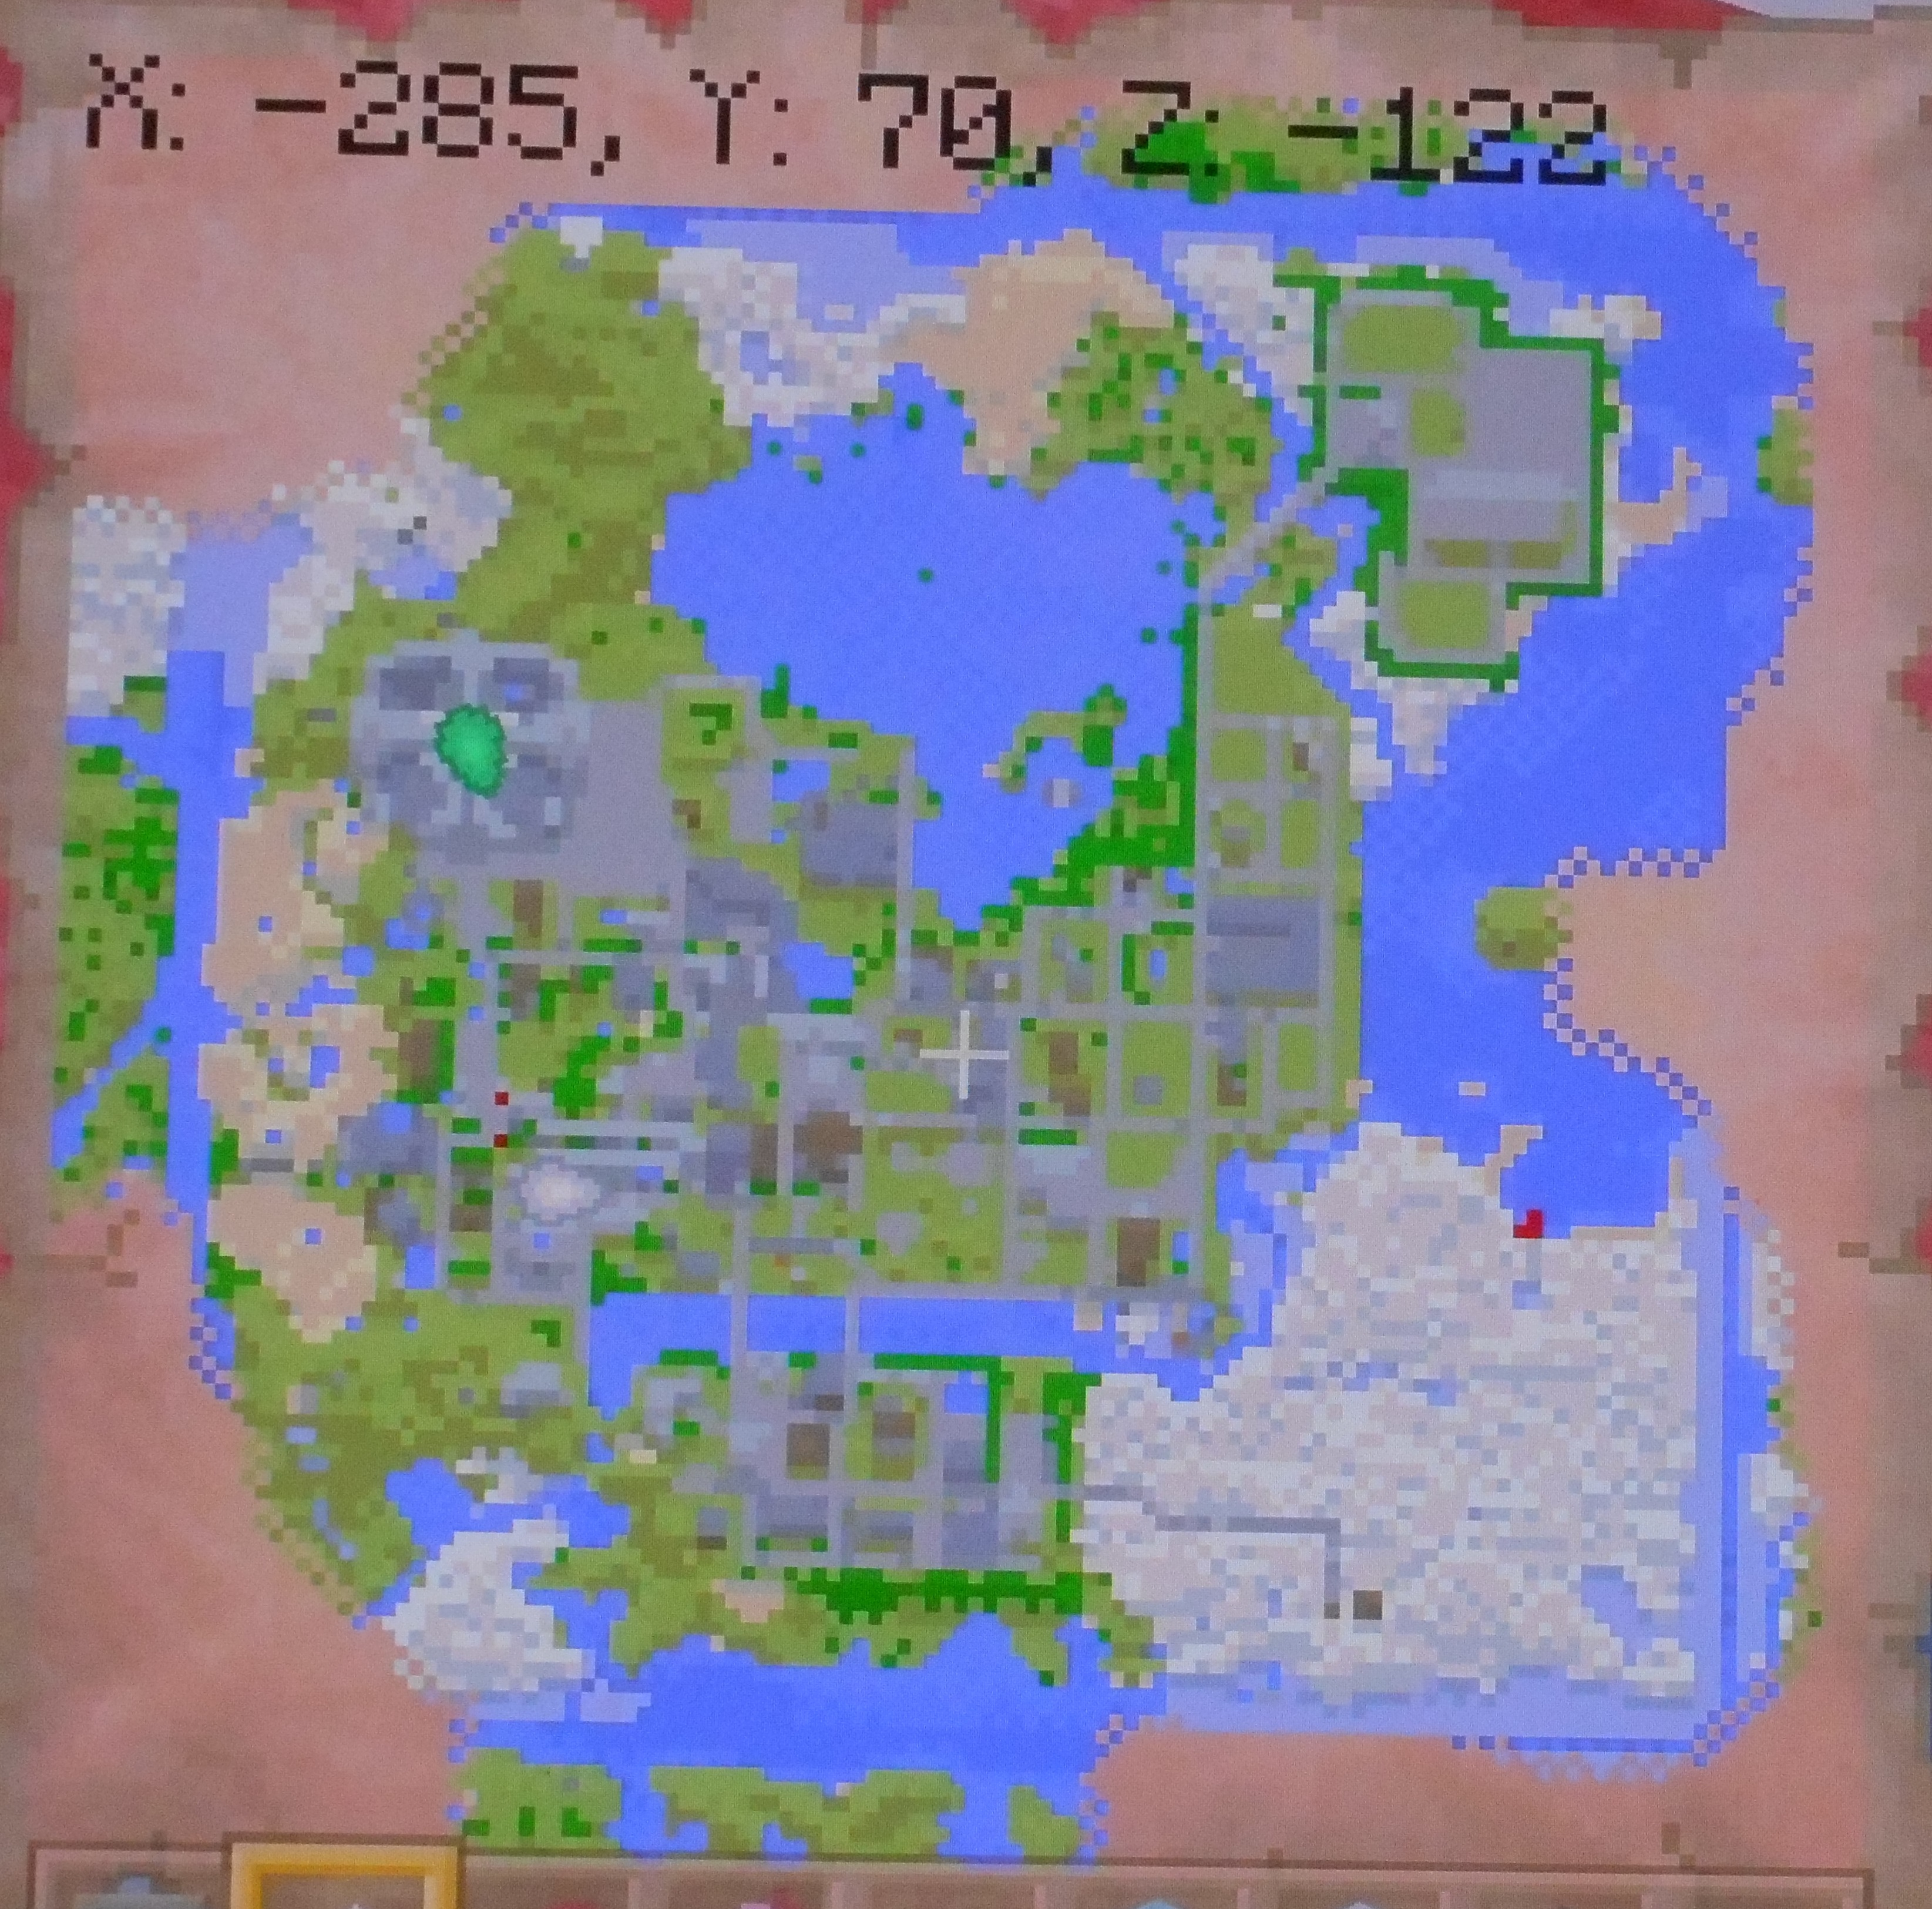 Large City Map on Xbox - MCX360: Looking For - MCX360 ...